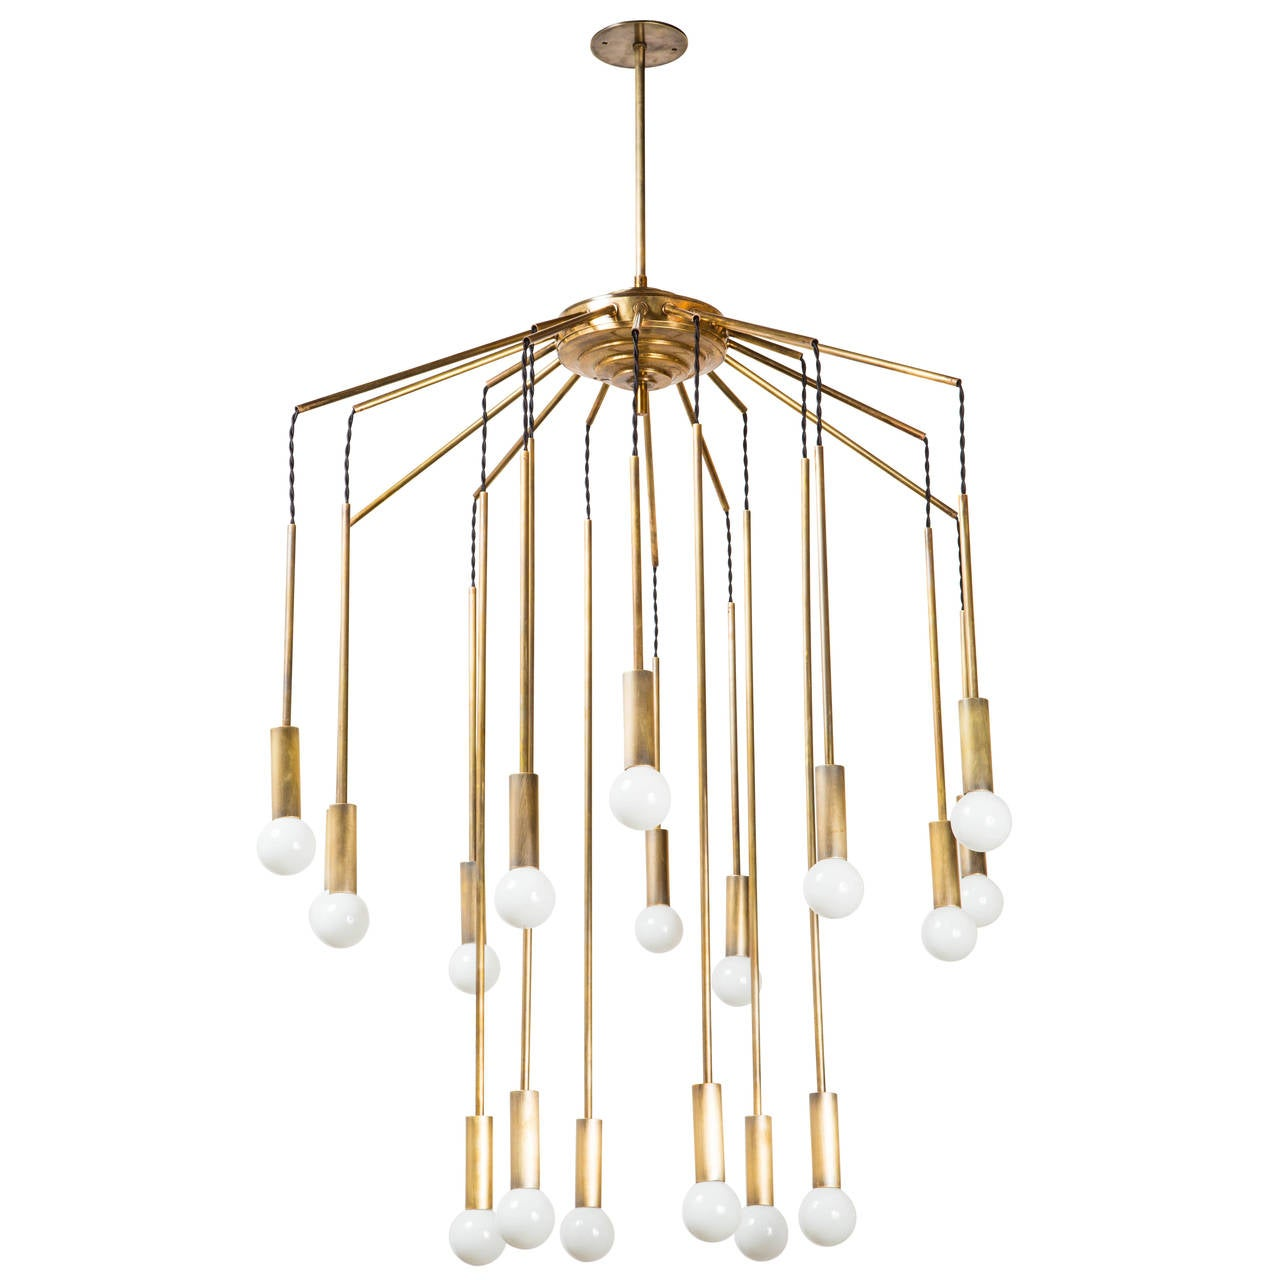 Italian Eighteen Arm Chandelier